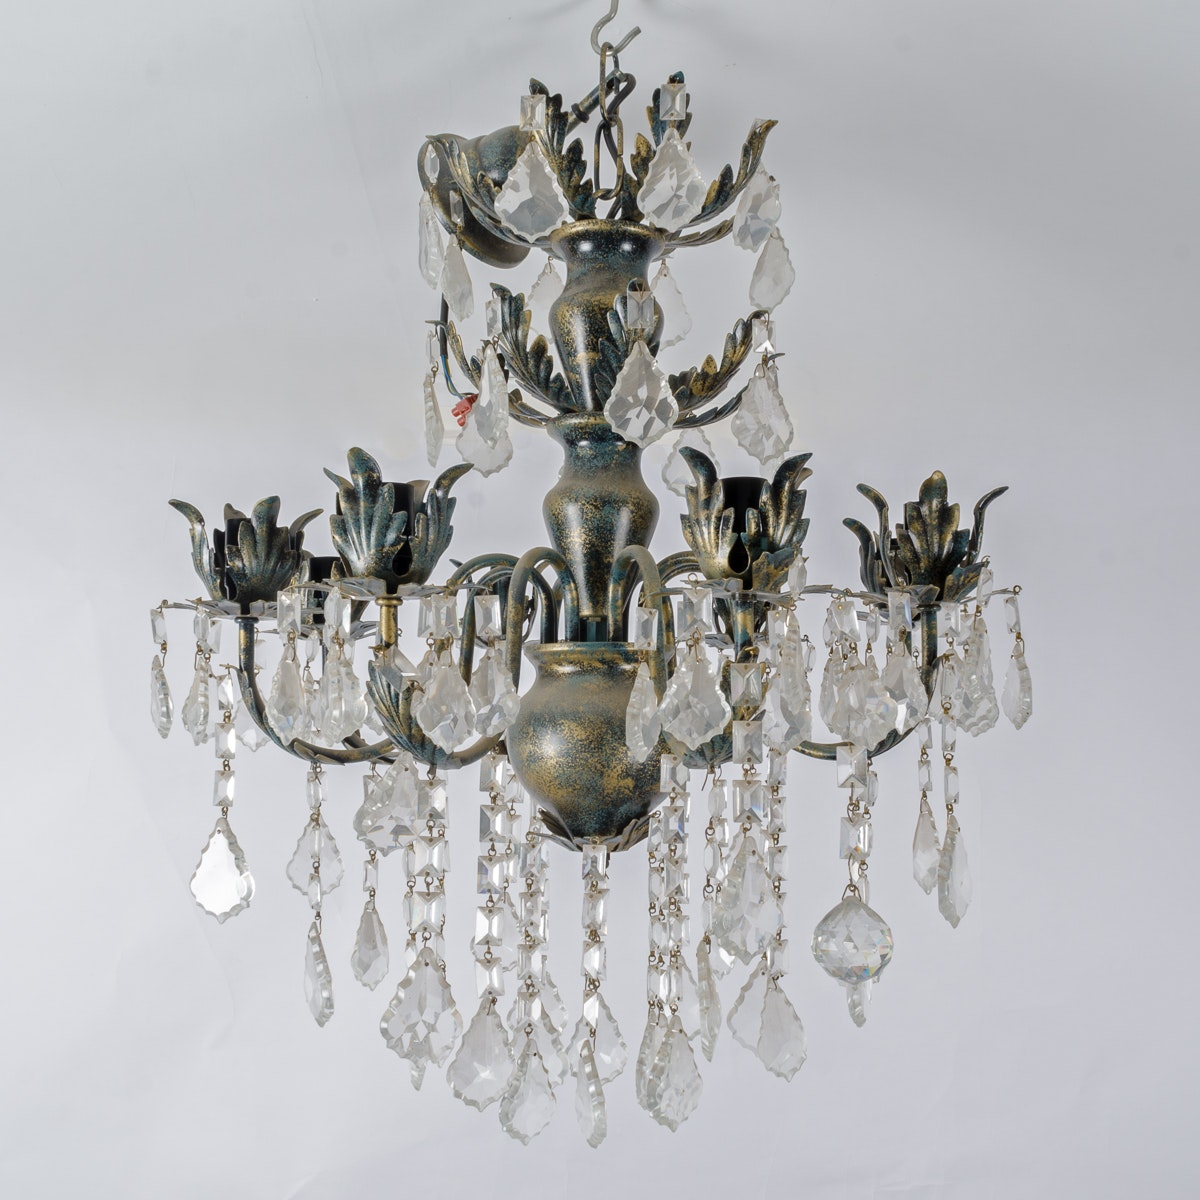 Eight Arm Chandelier with Glass and Crystal Prisms